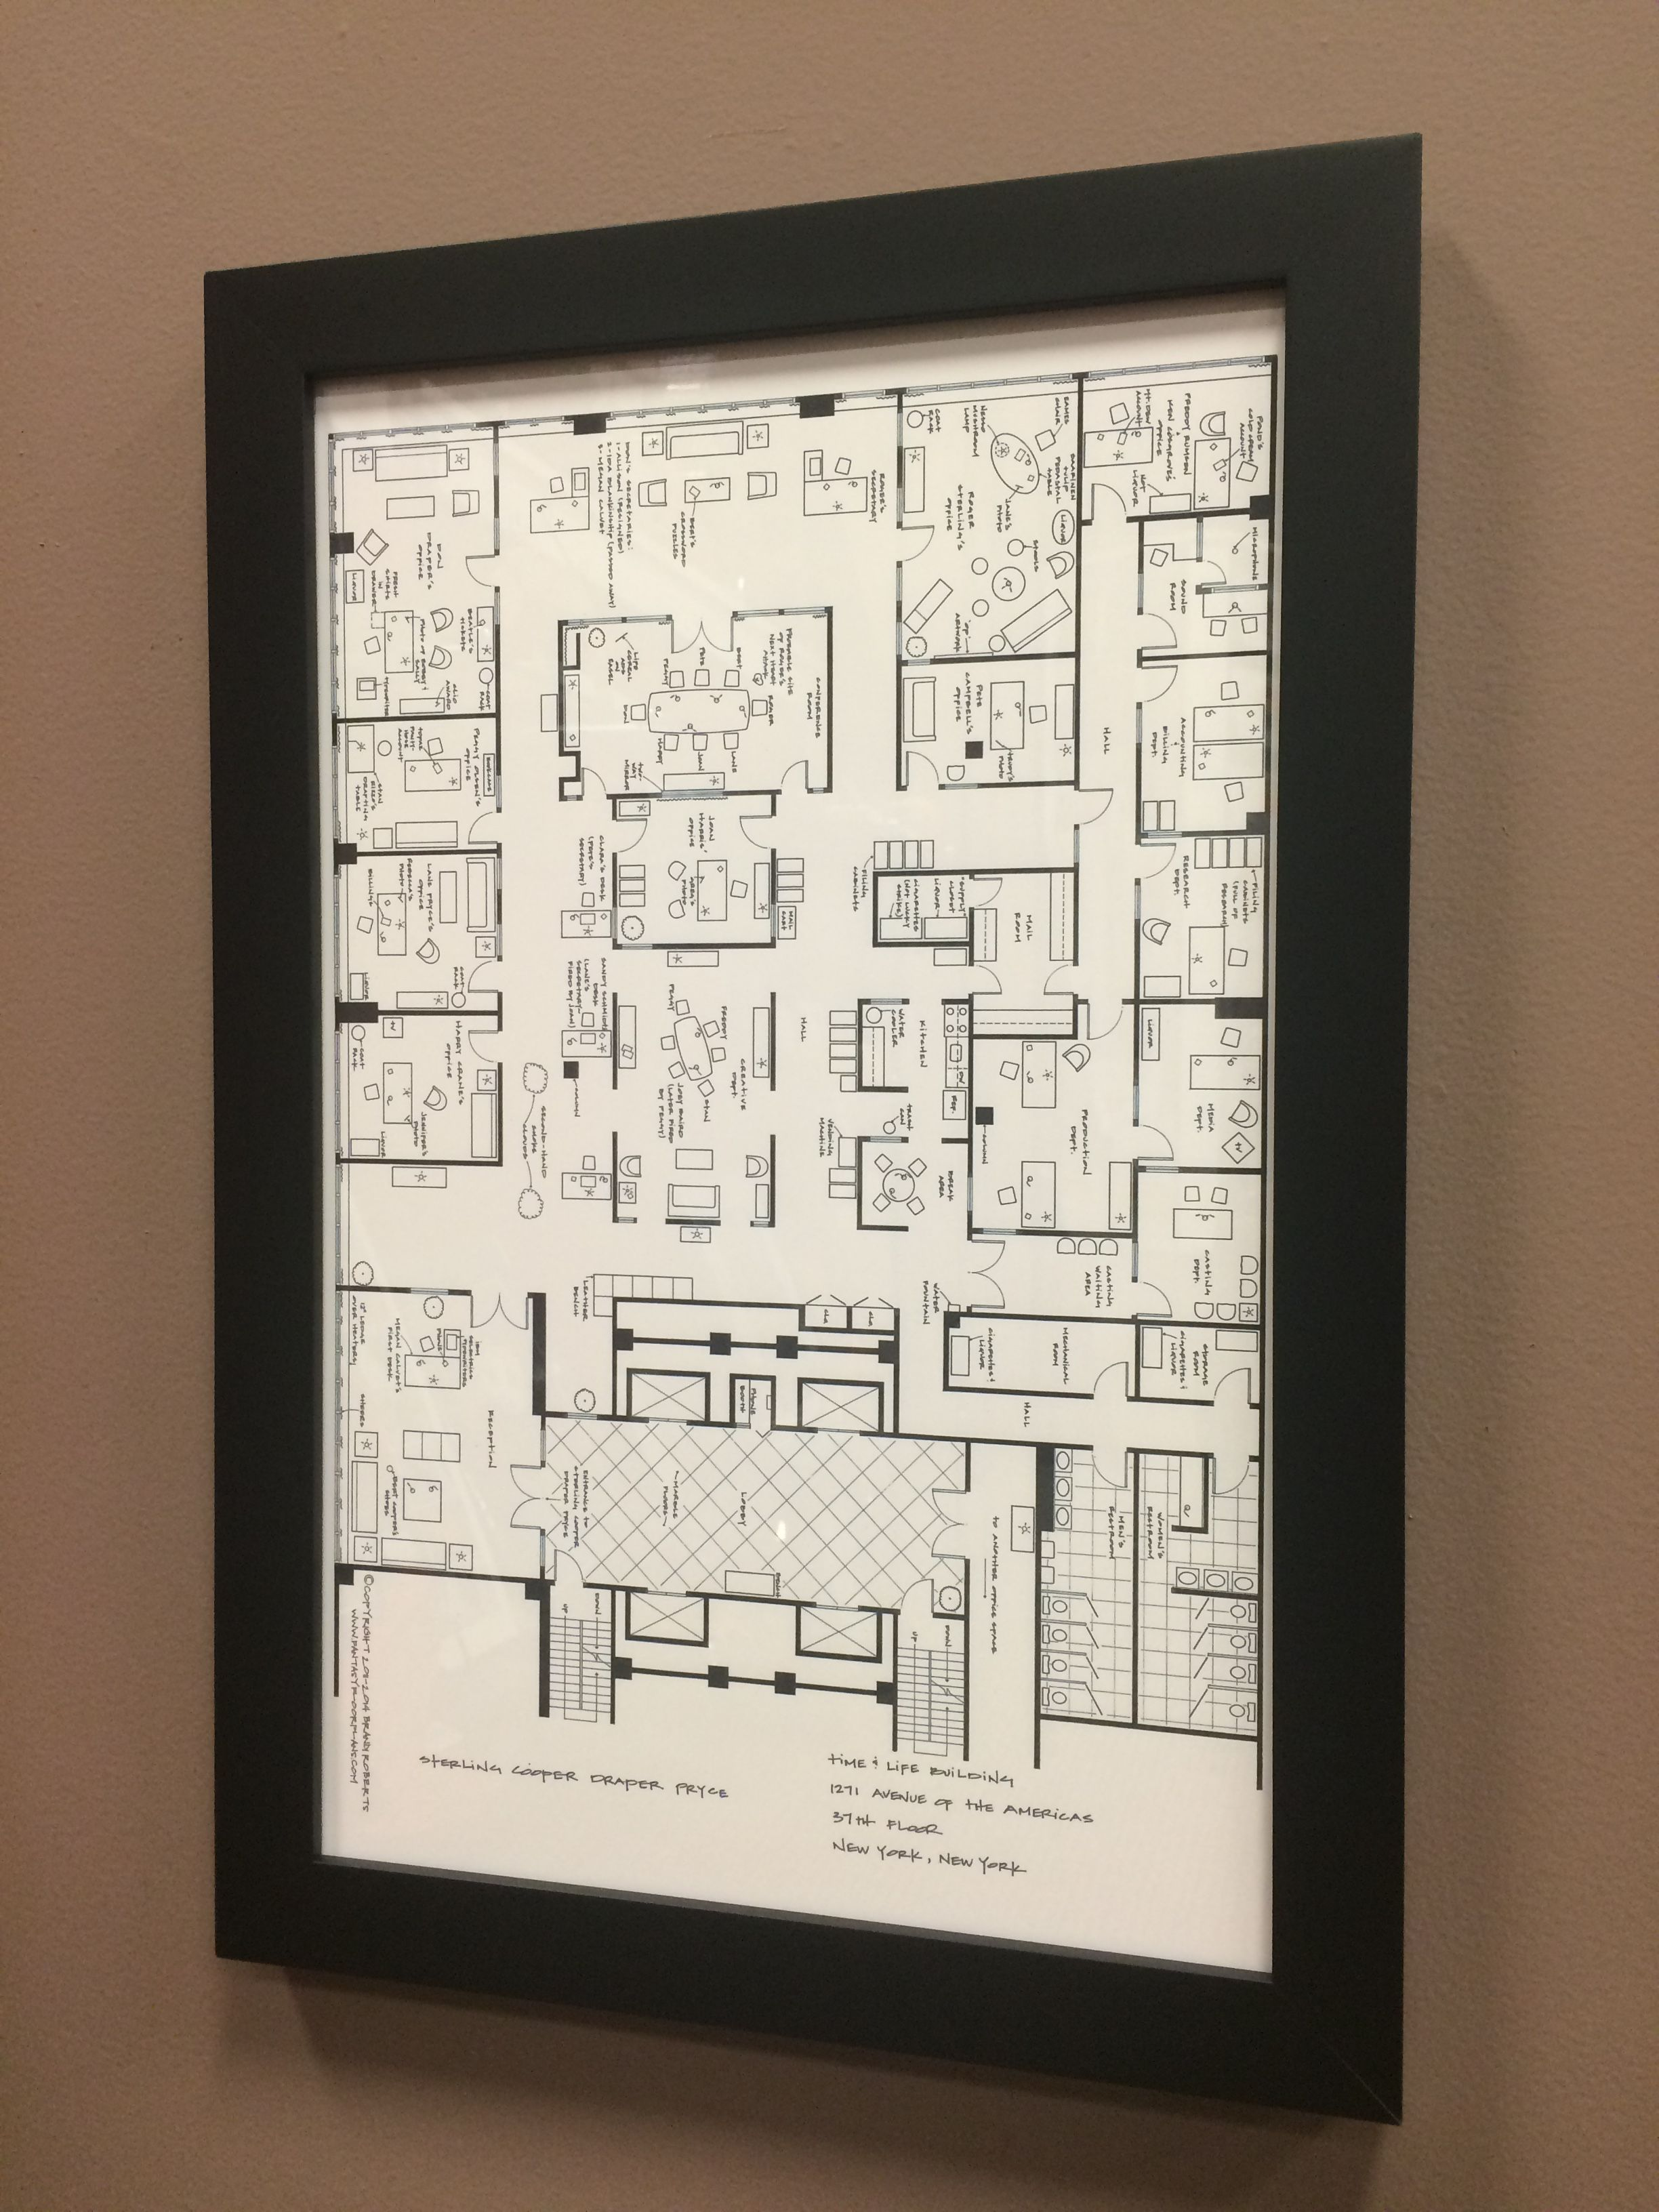 Blueprint of time life building in new york new york custom framed blueprint of time life building in new york new york custom framed in malvernweather Gallery